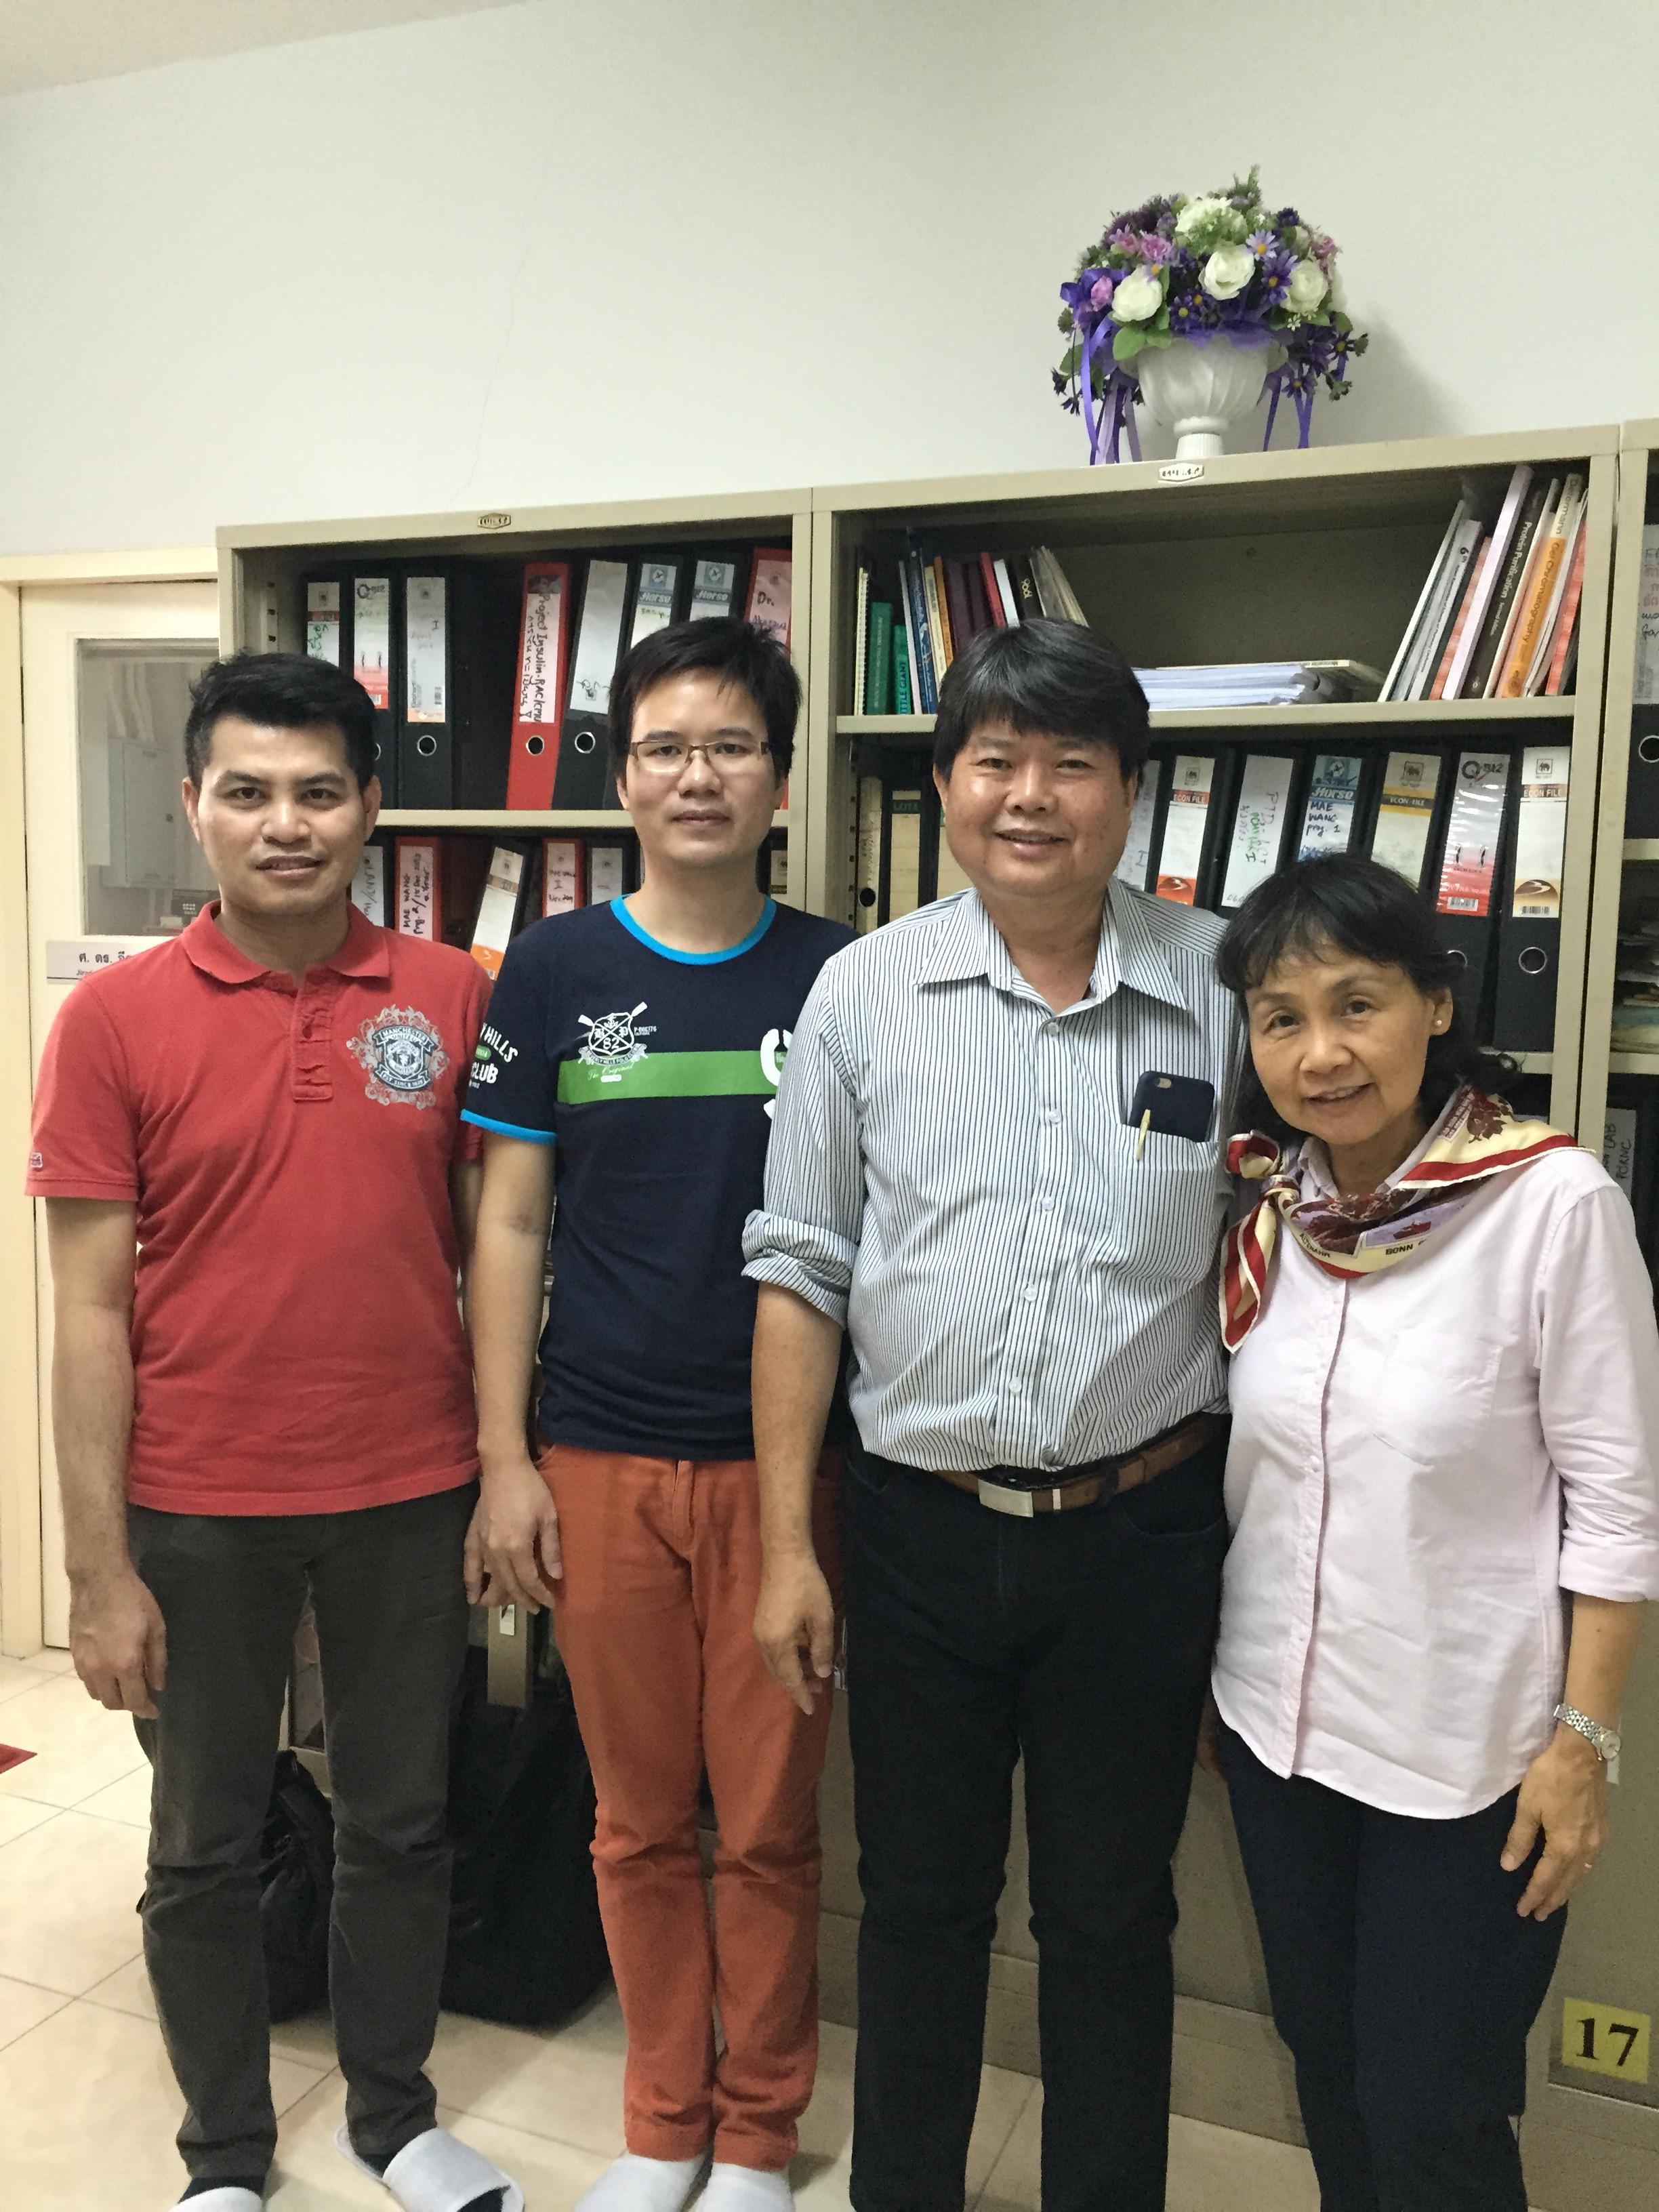 Mr. Chewapat Pairachapin and Mr. Kanisorn Mathaphumsophon from Star Route Travel and Global Service Co., Ltd. have visited Manose Health and Beauty Research Center